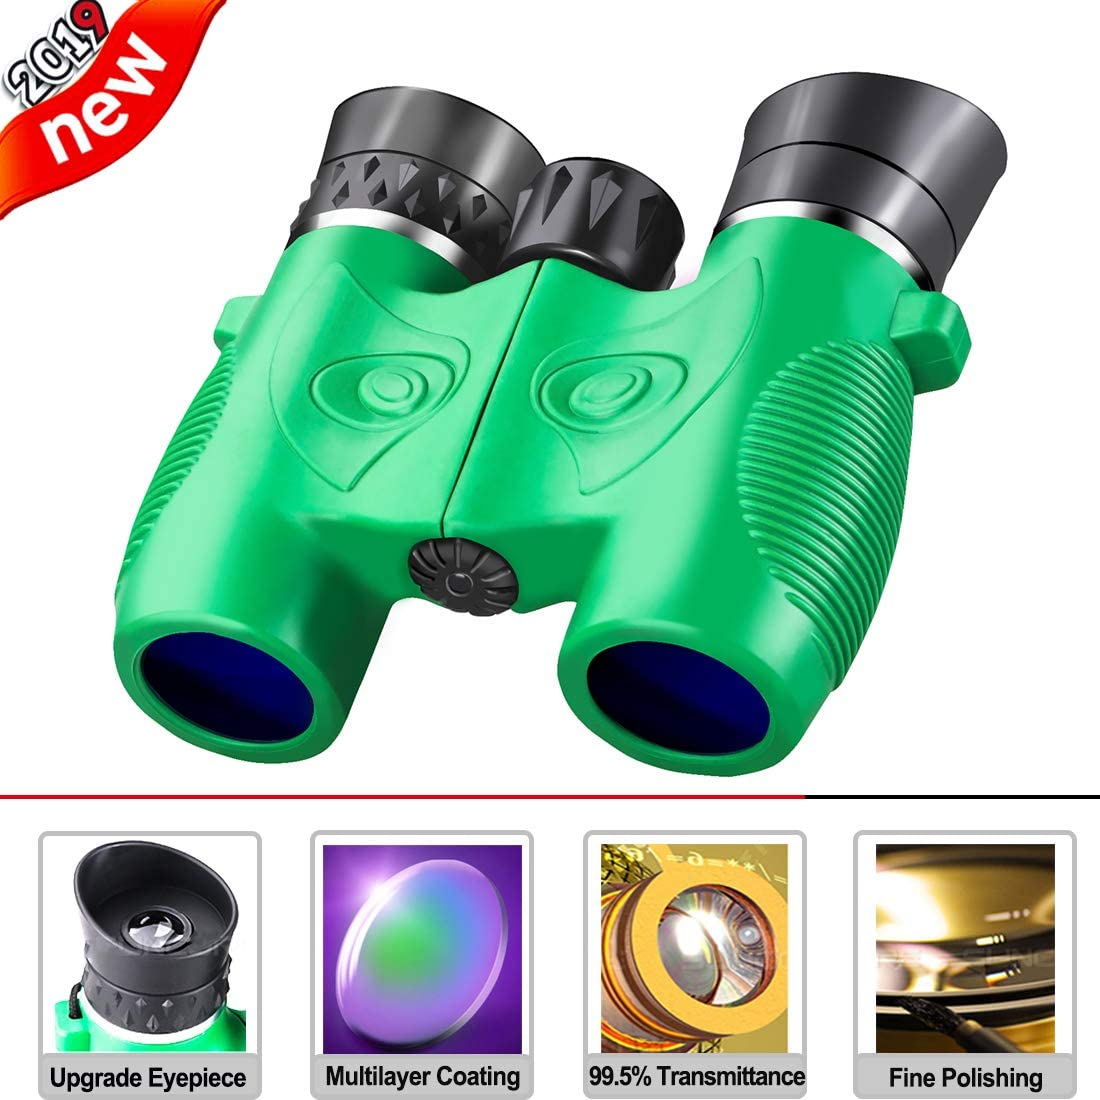 Beiko Kids Binoculars,Compact Folding High Resolution Binoculars for Toddlers with Strap Perfect for Travel Theatre and Bird Watching Even Night Vision Stargazing Boys Girls Birthday Gift Green